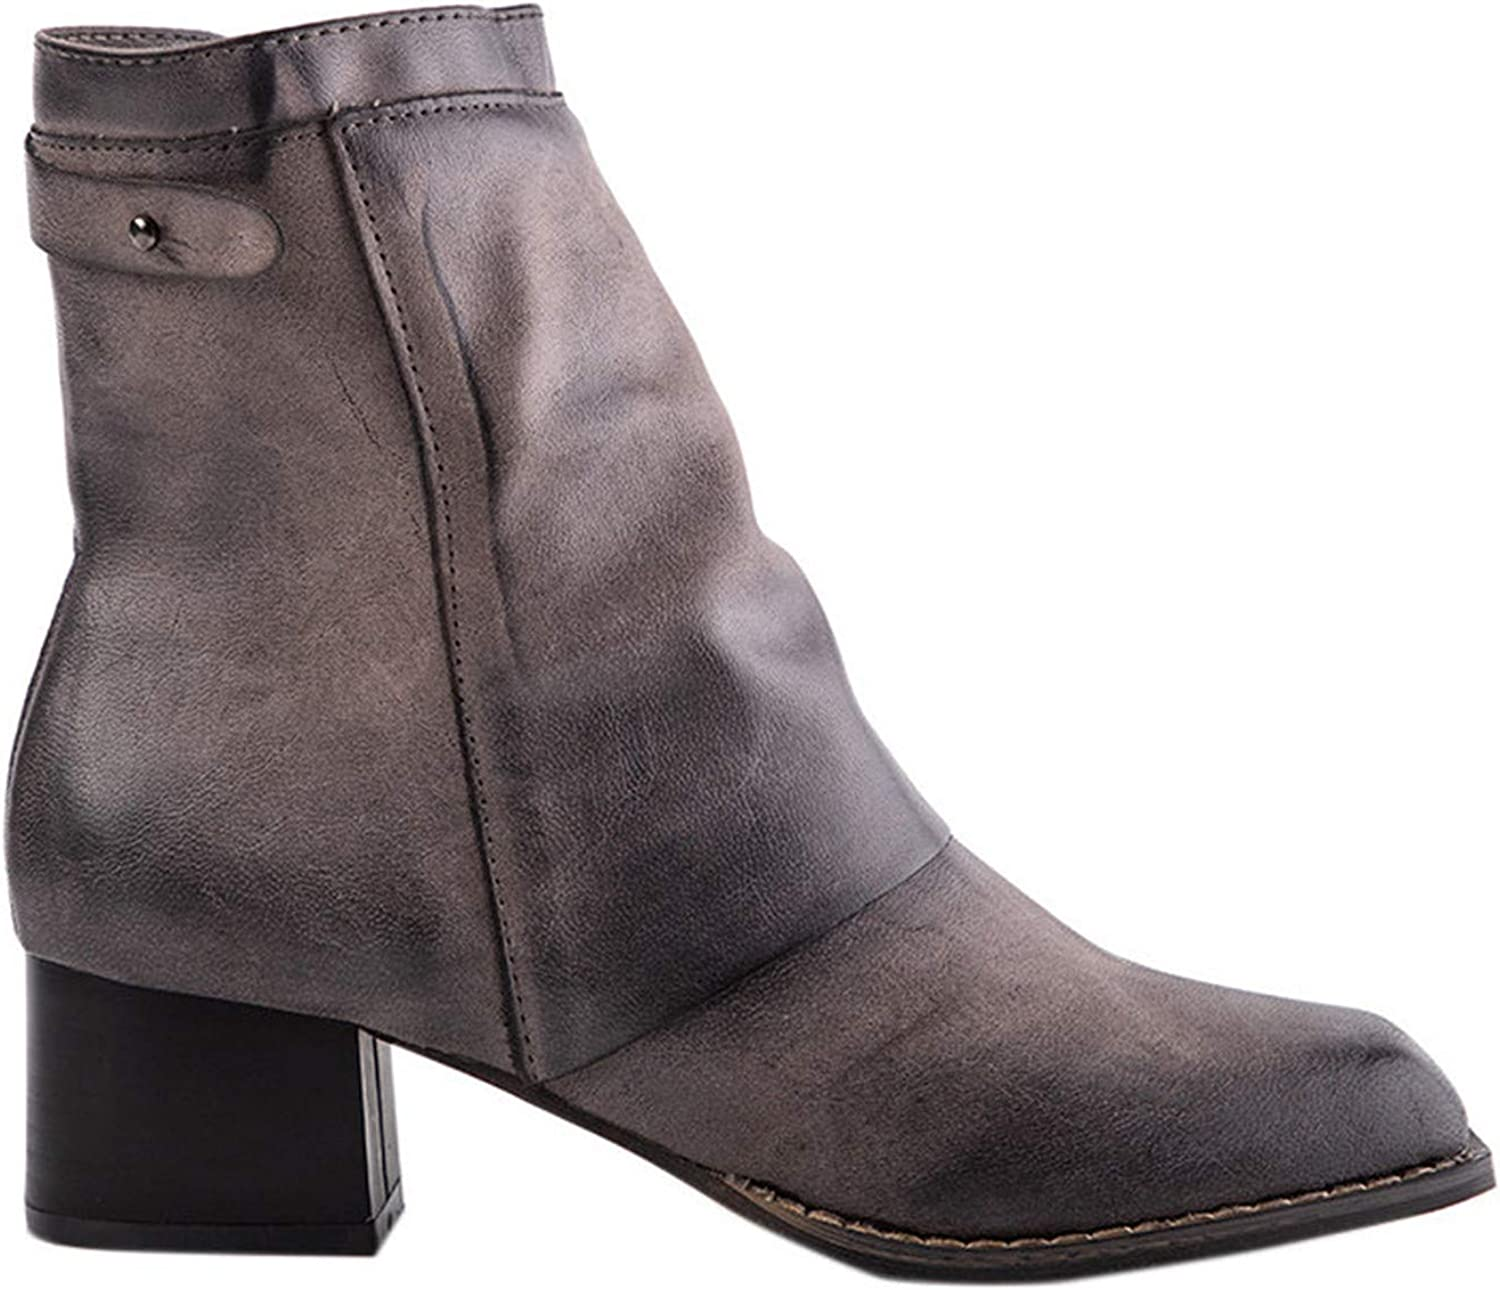 Women Winter Leather Grey Ankle Boots Square Toe Med Heel Zipper Ladies Bootie shoes Plus